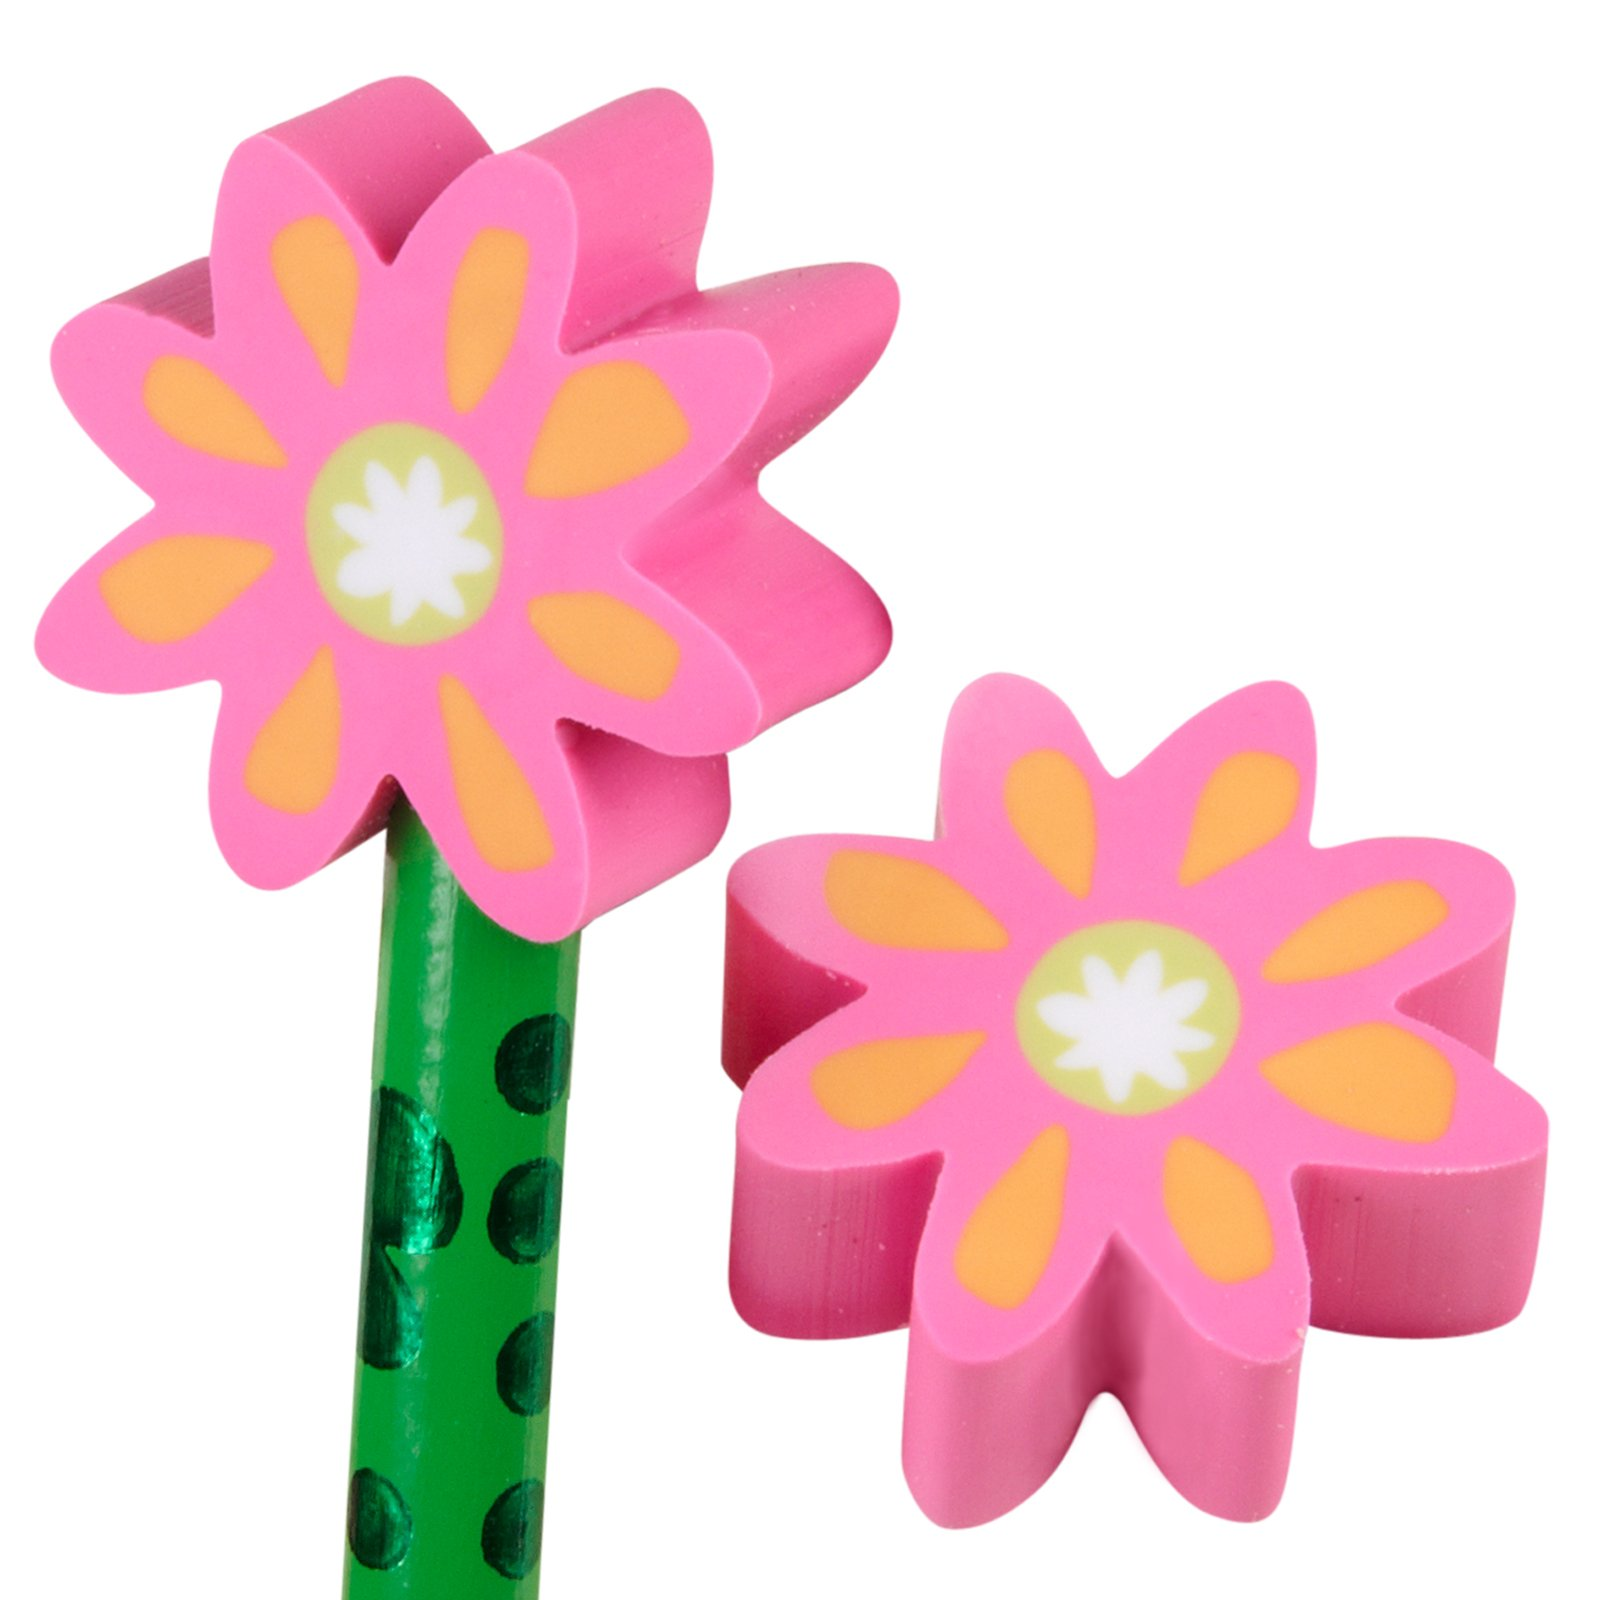 Flower Eraser Toppers (8 count)